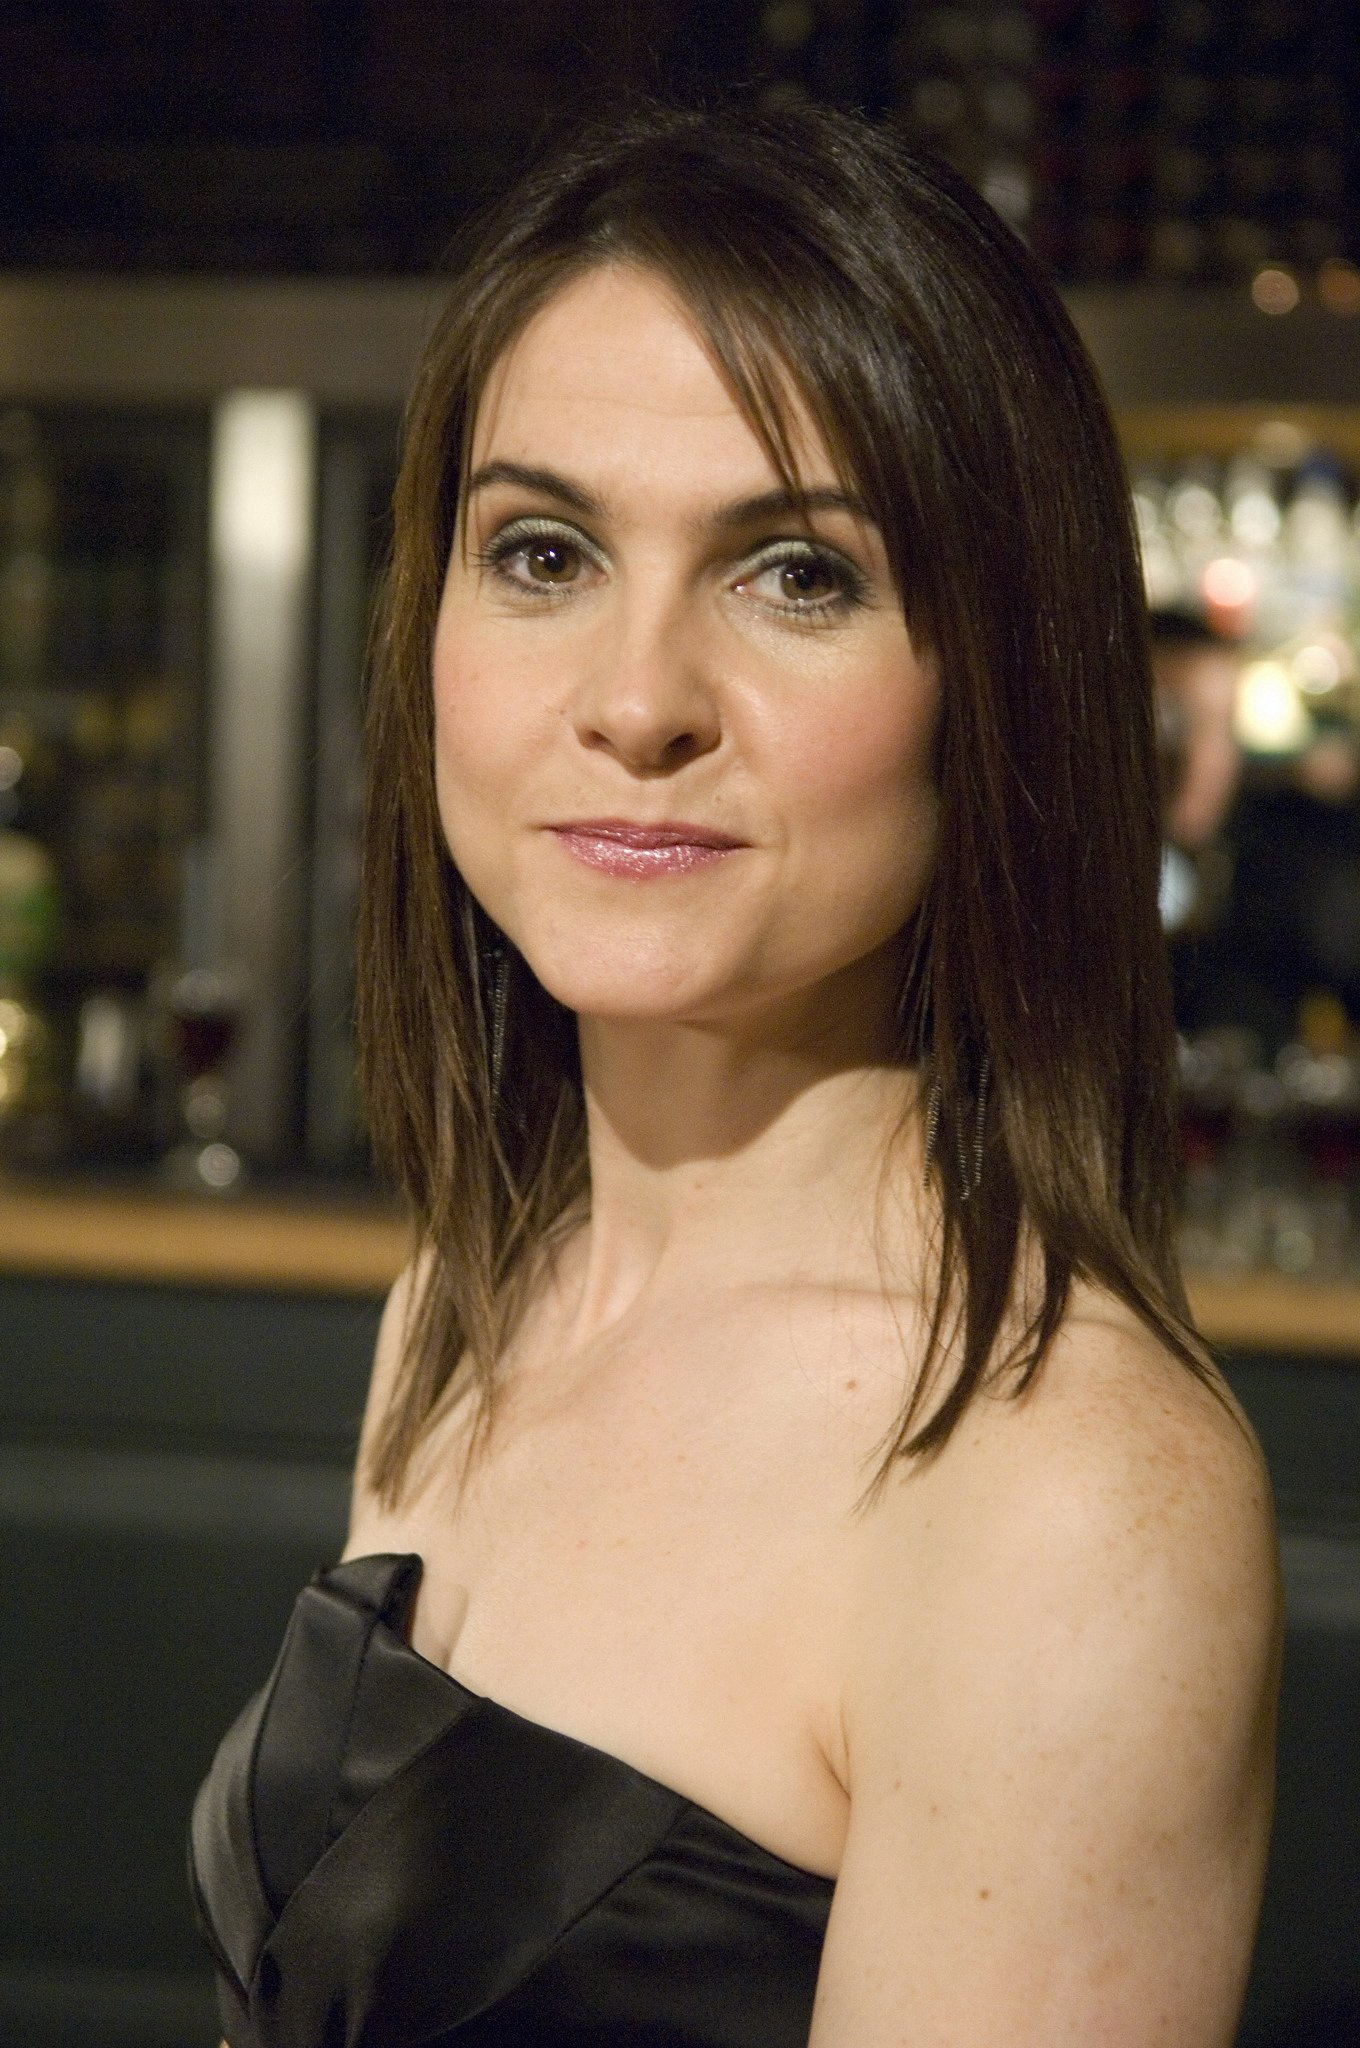 Gillian Kearney nude (71 foto and video), Sexy, Paparazzi, Feet, braless 2017